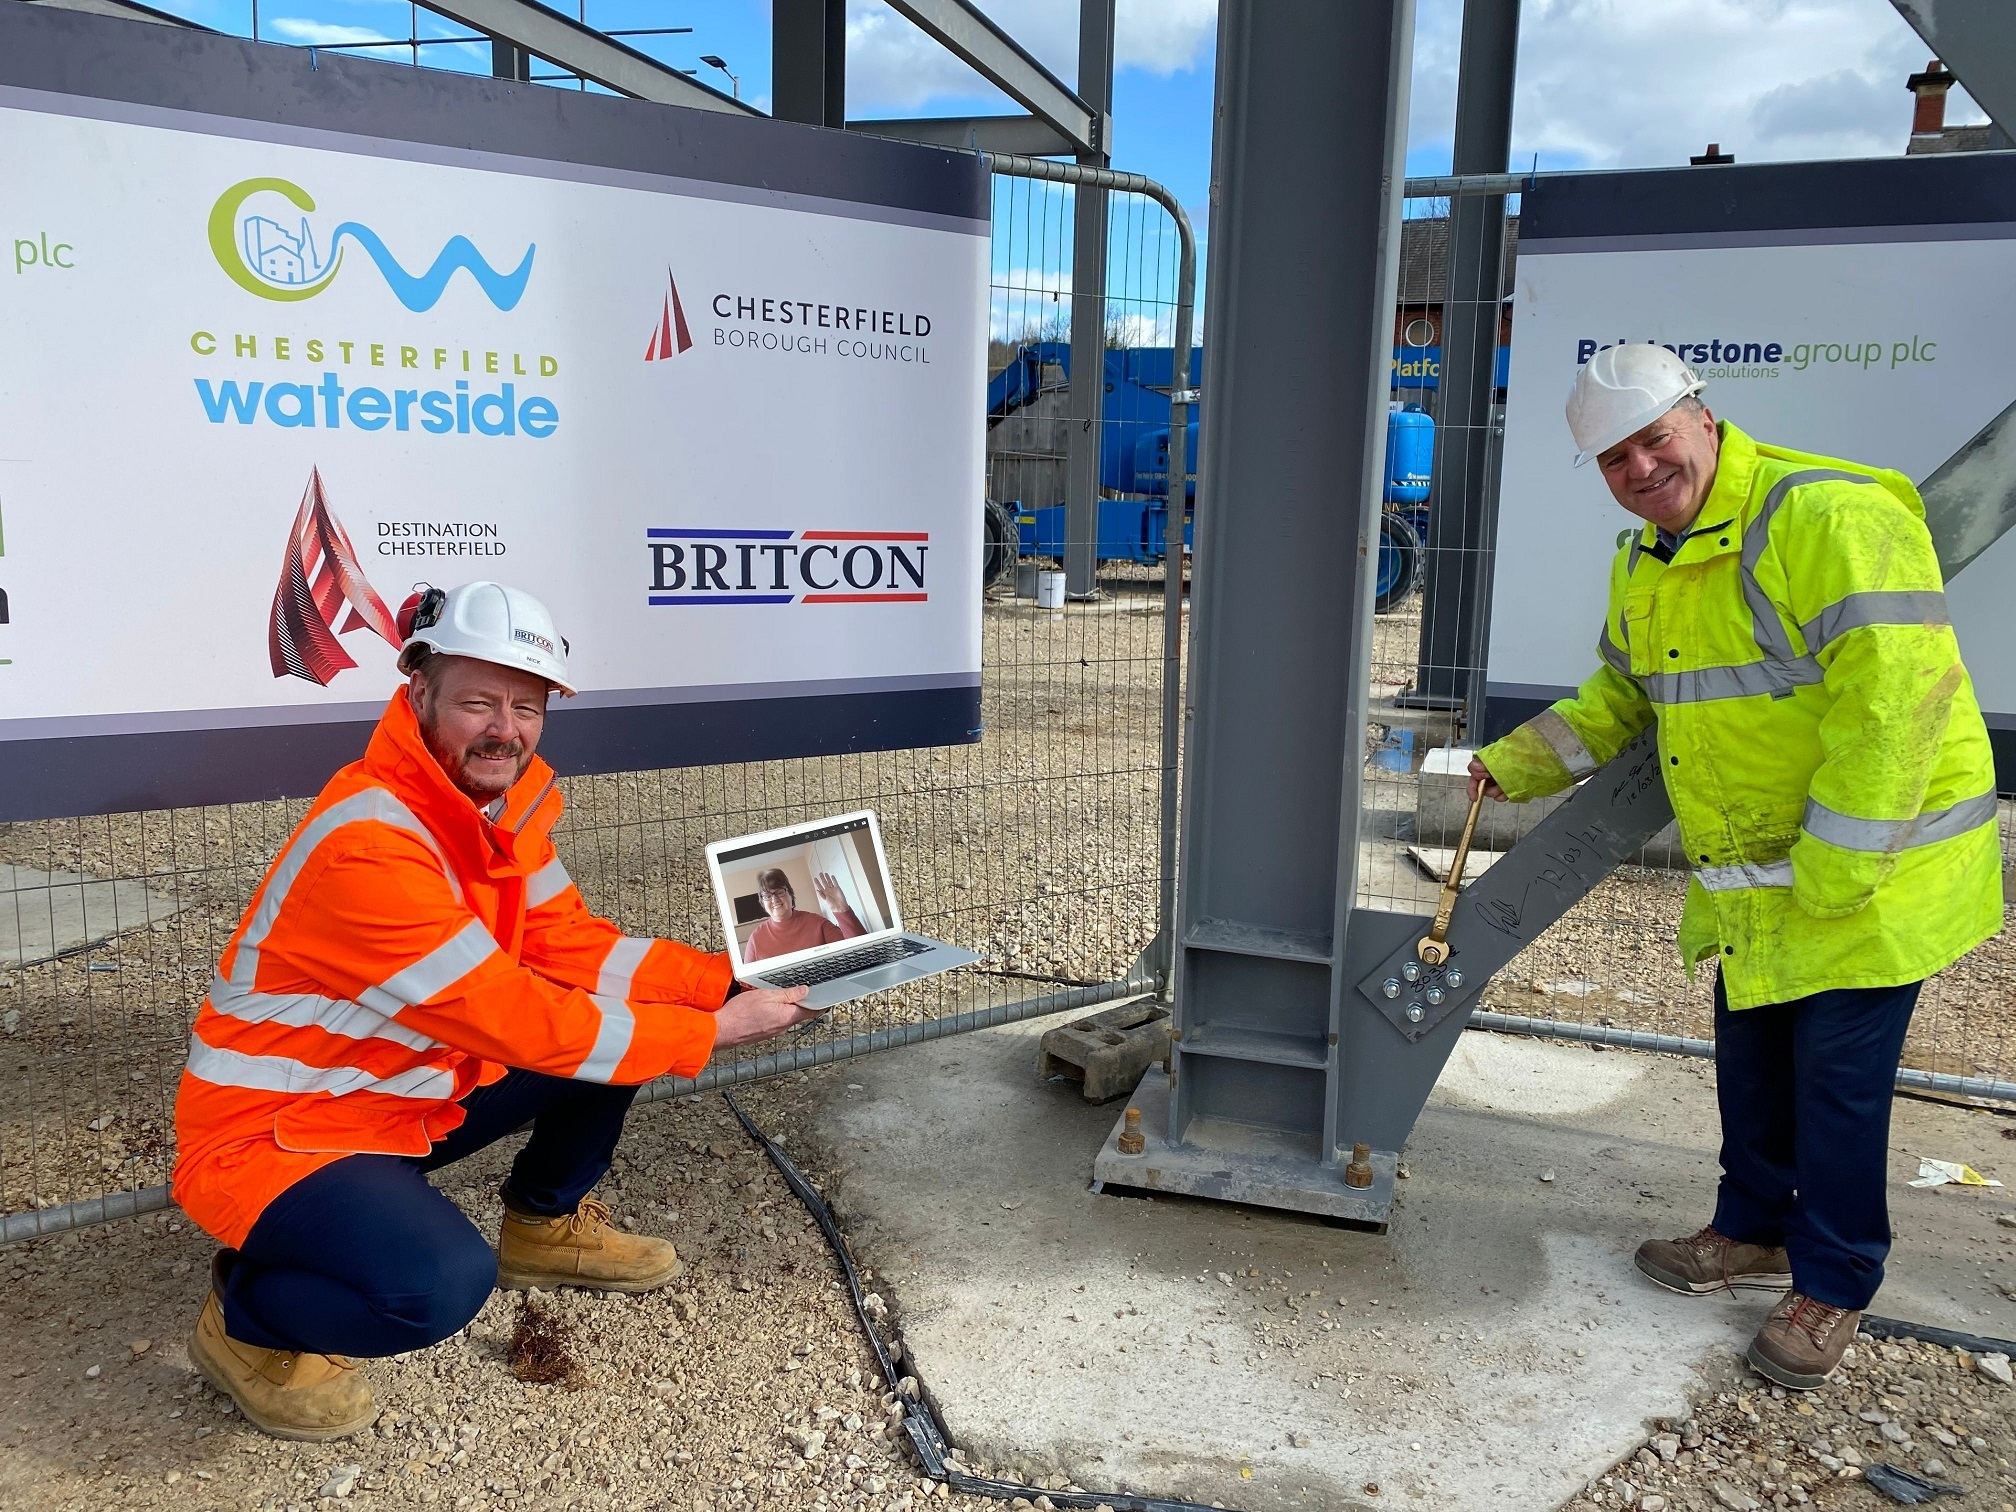 Bolt tightening ceremony marks another milestone in Chesterfield Waterside